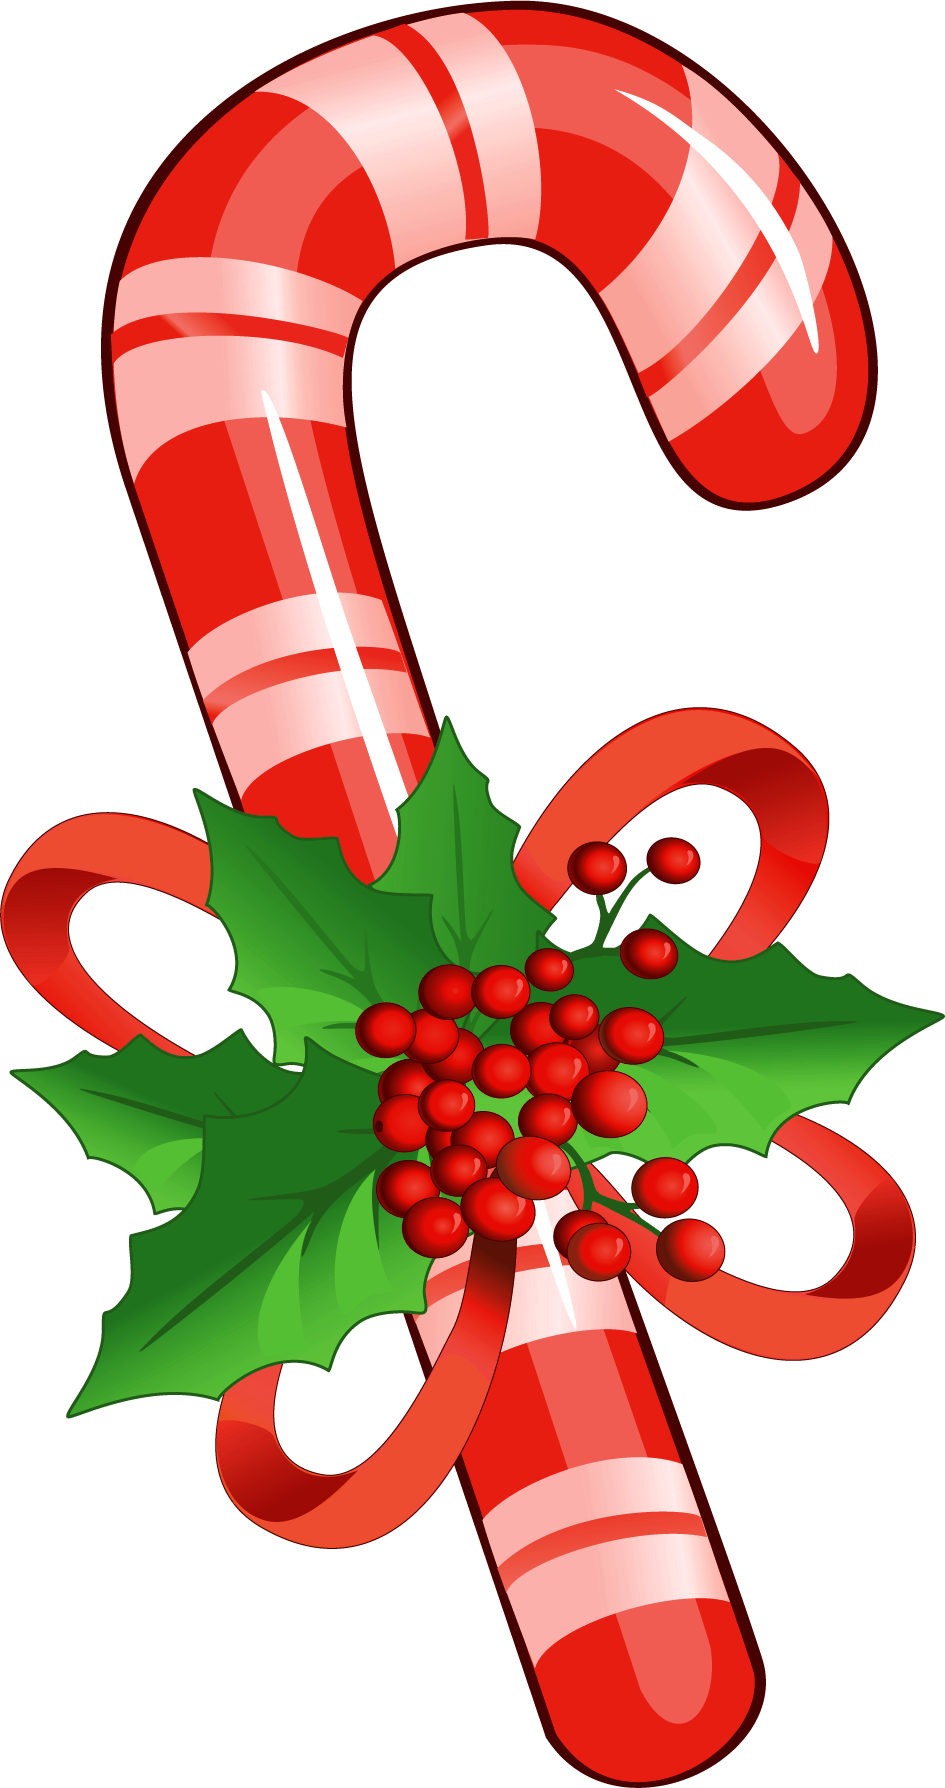 Candy cane with mistletoe png clipart